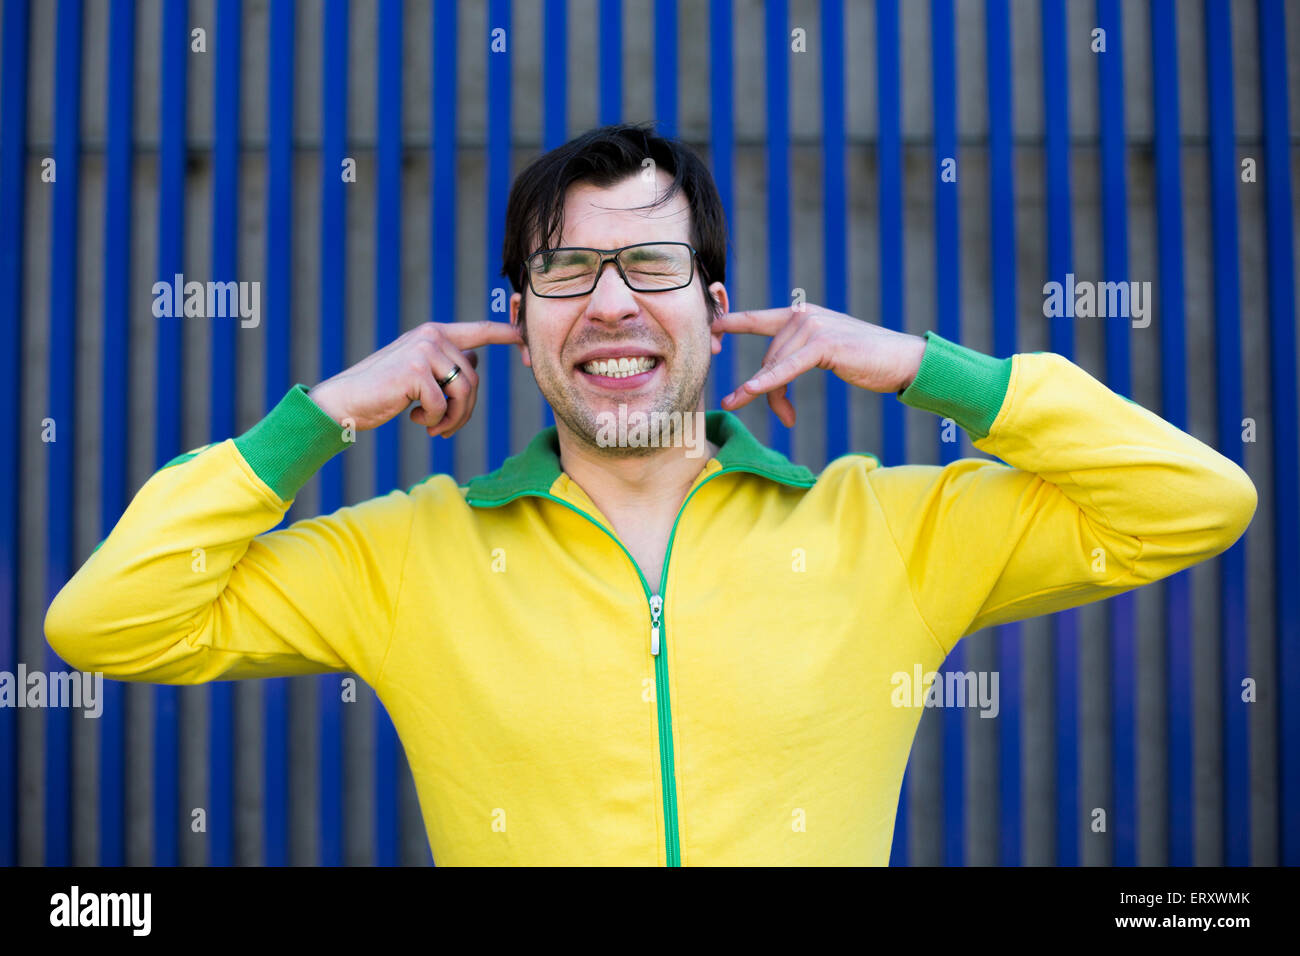 man in yellow trikot shuts his ears with his fingers and has his eyes closed - Stock Image